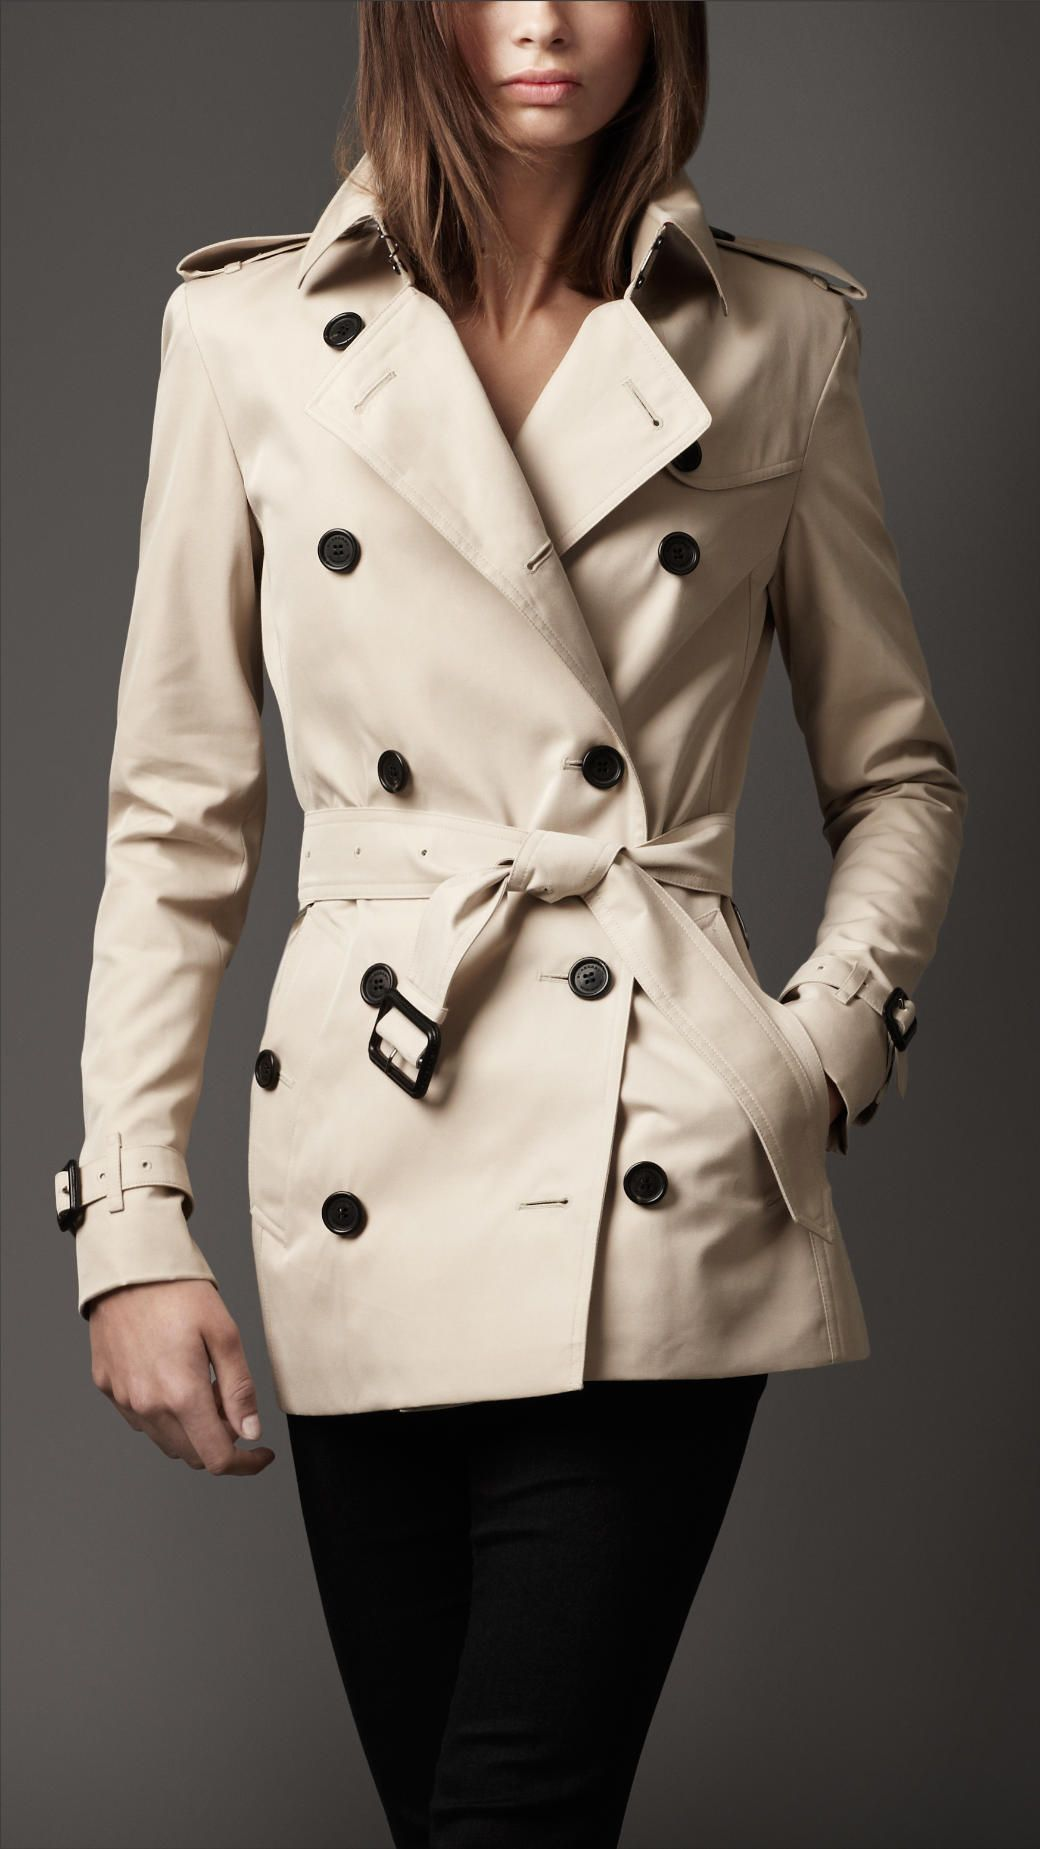 Sexy Short Burberry Trench Coat on My Lady with some black ...